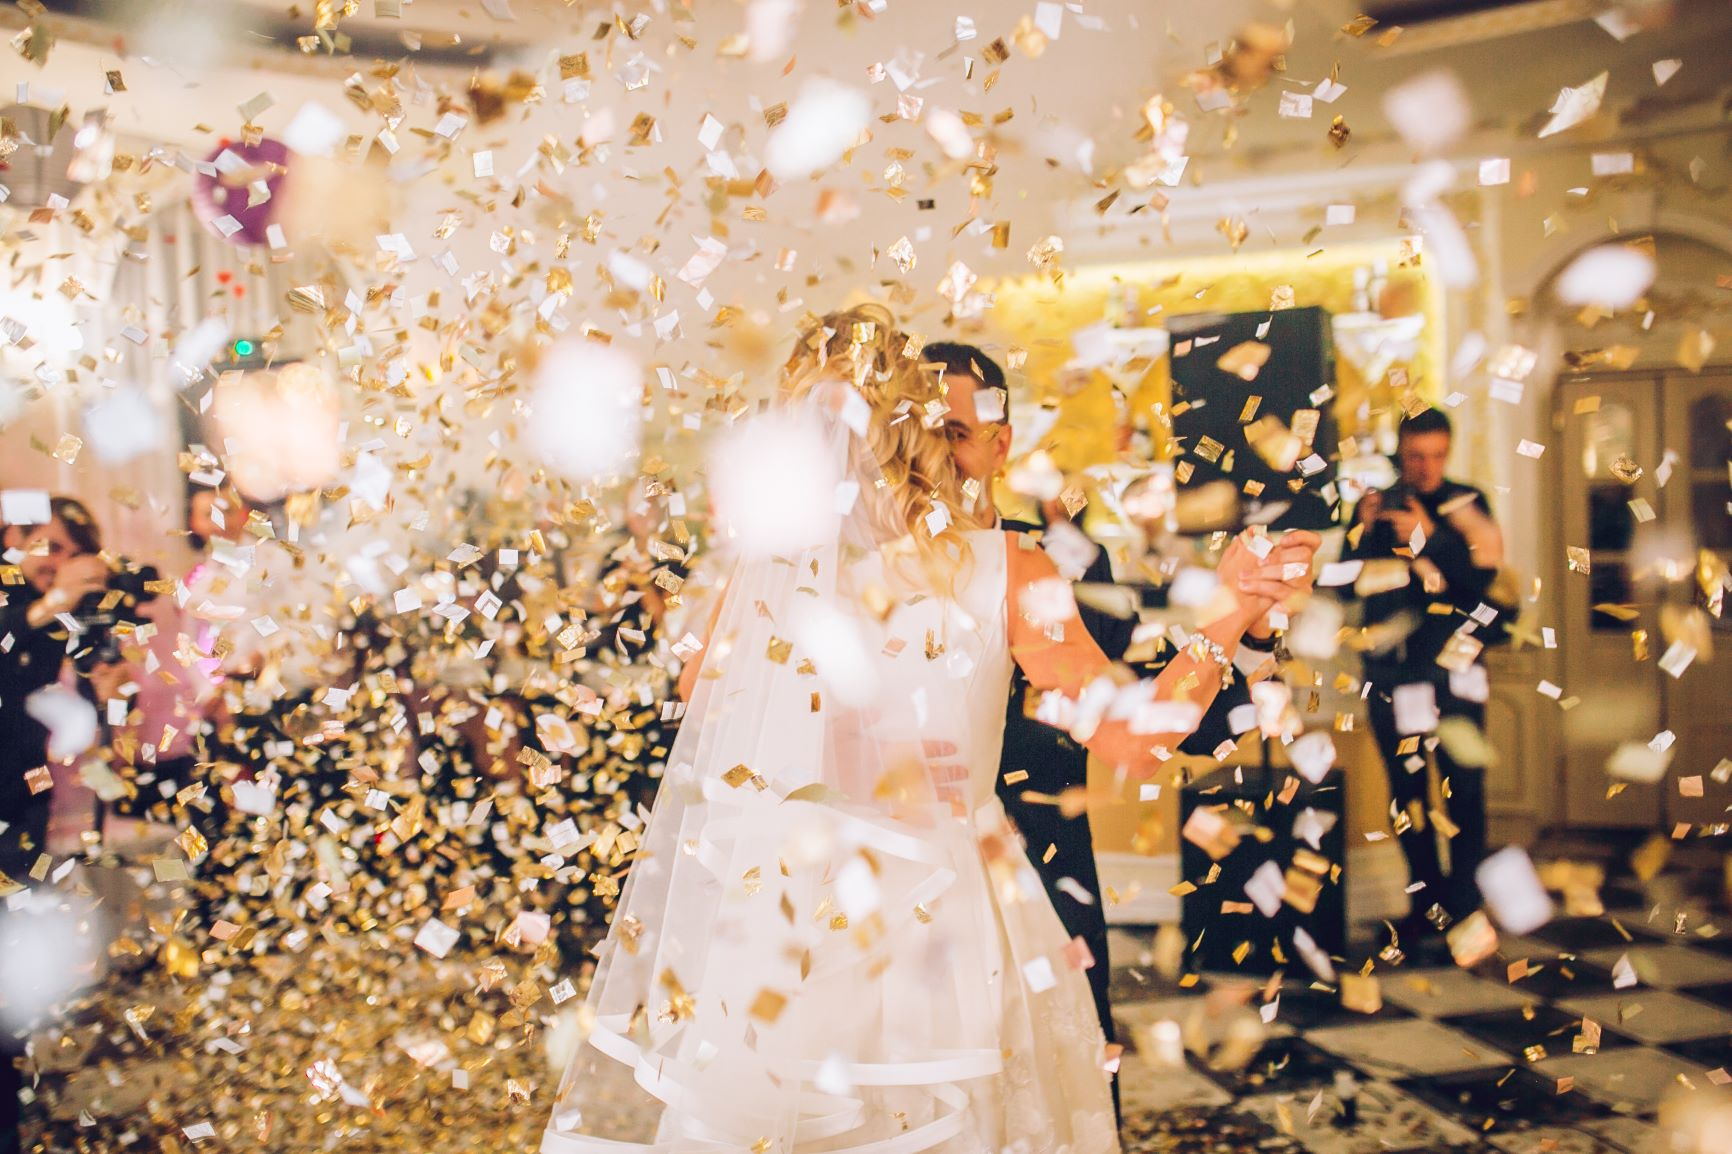 Confetti falling: Making the most of your wedding photos